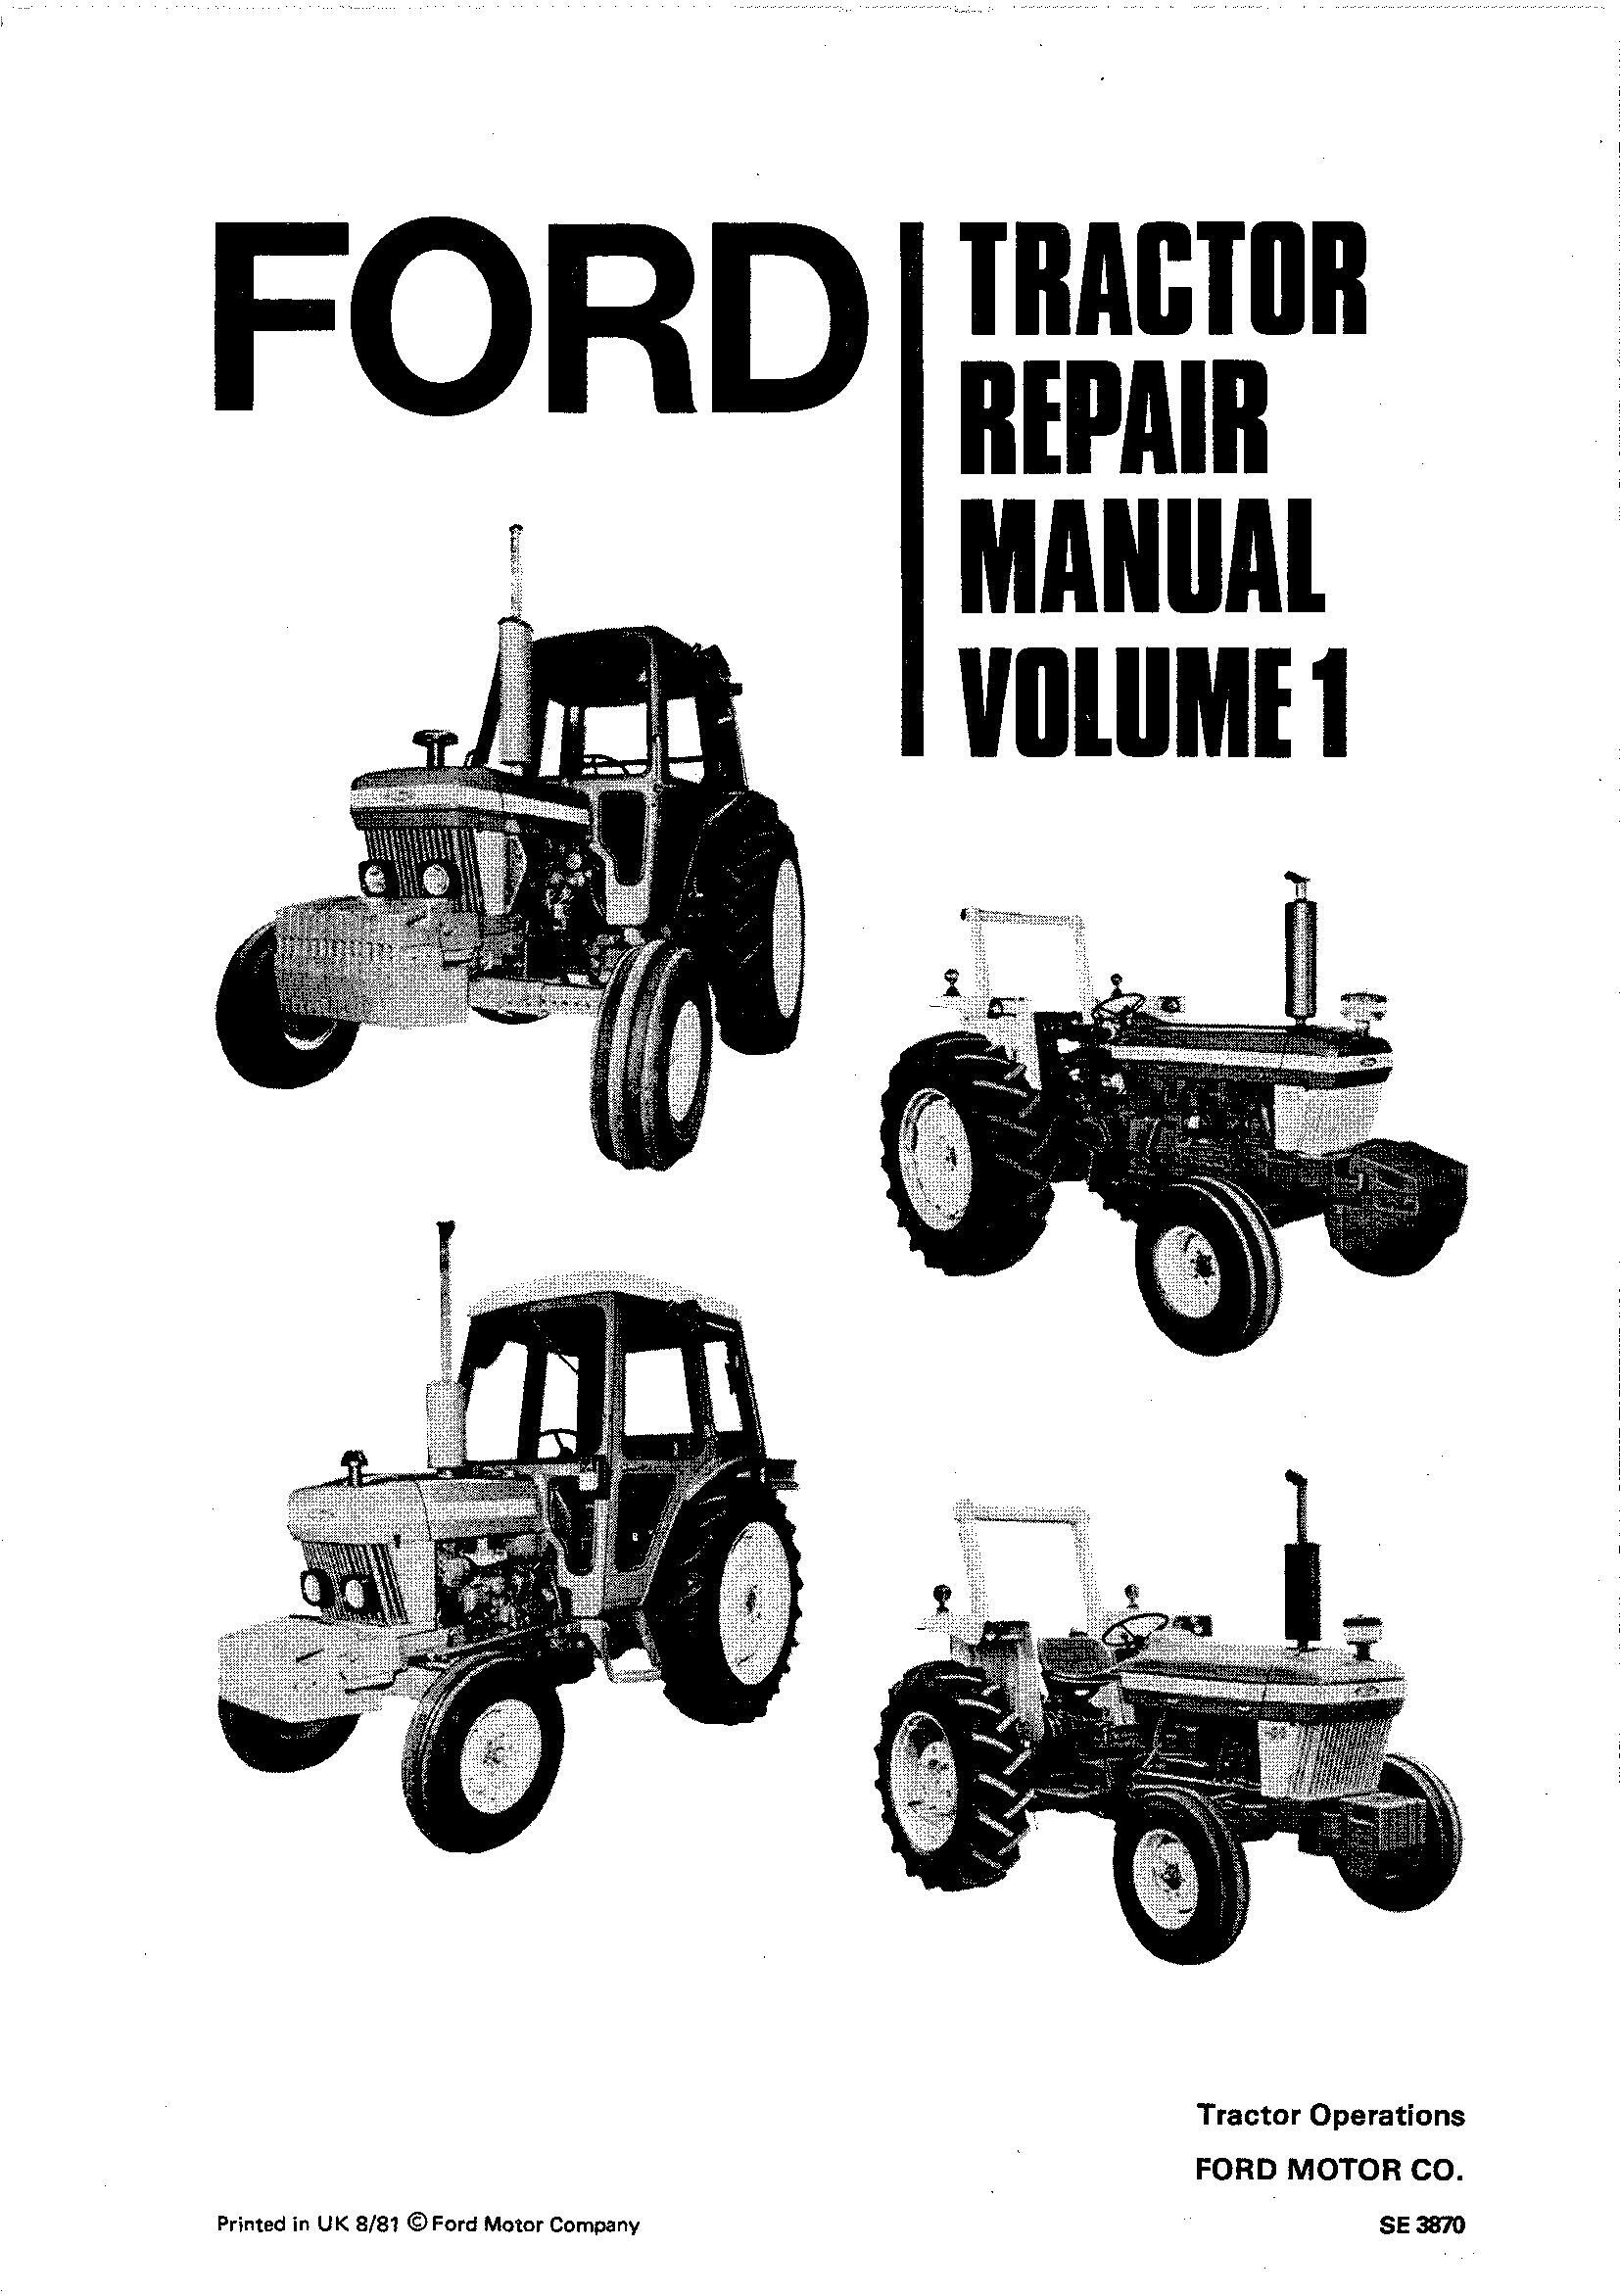 Ford 2910, 3910, 4110, 4610, 5610, 6610, 6710, 7610, 7710